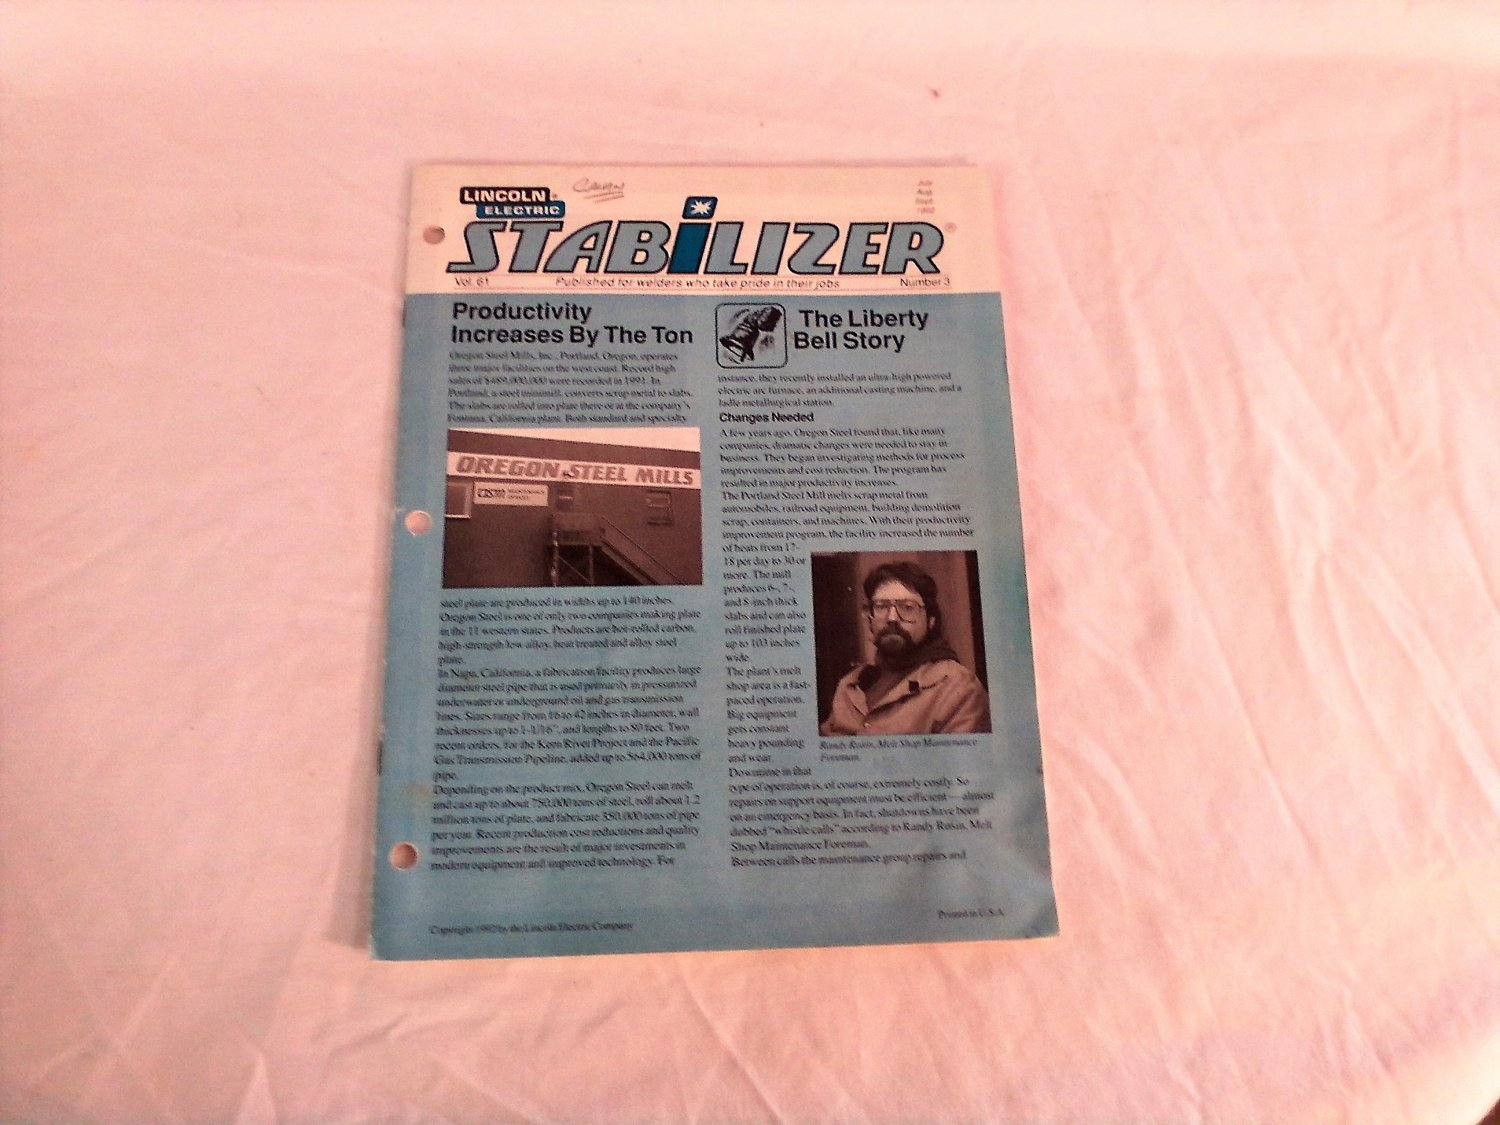 Lincoln Electric Stabilizer Periodical July / August / September 1992 Vol. 61 No. 3